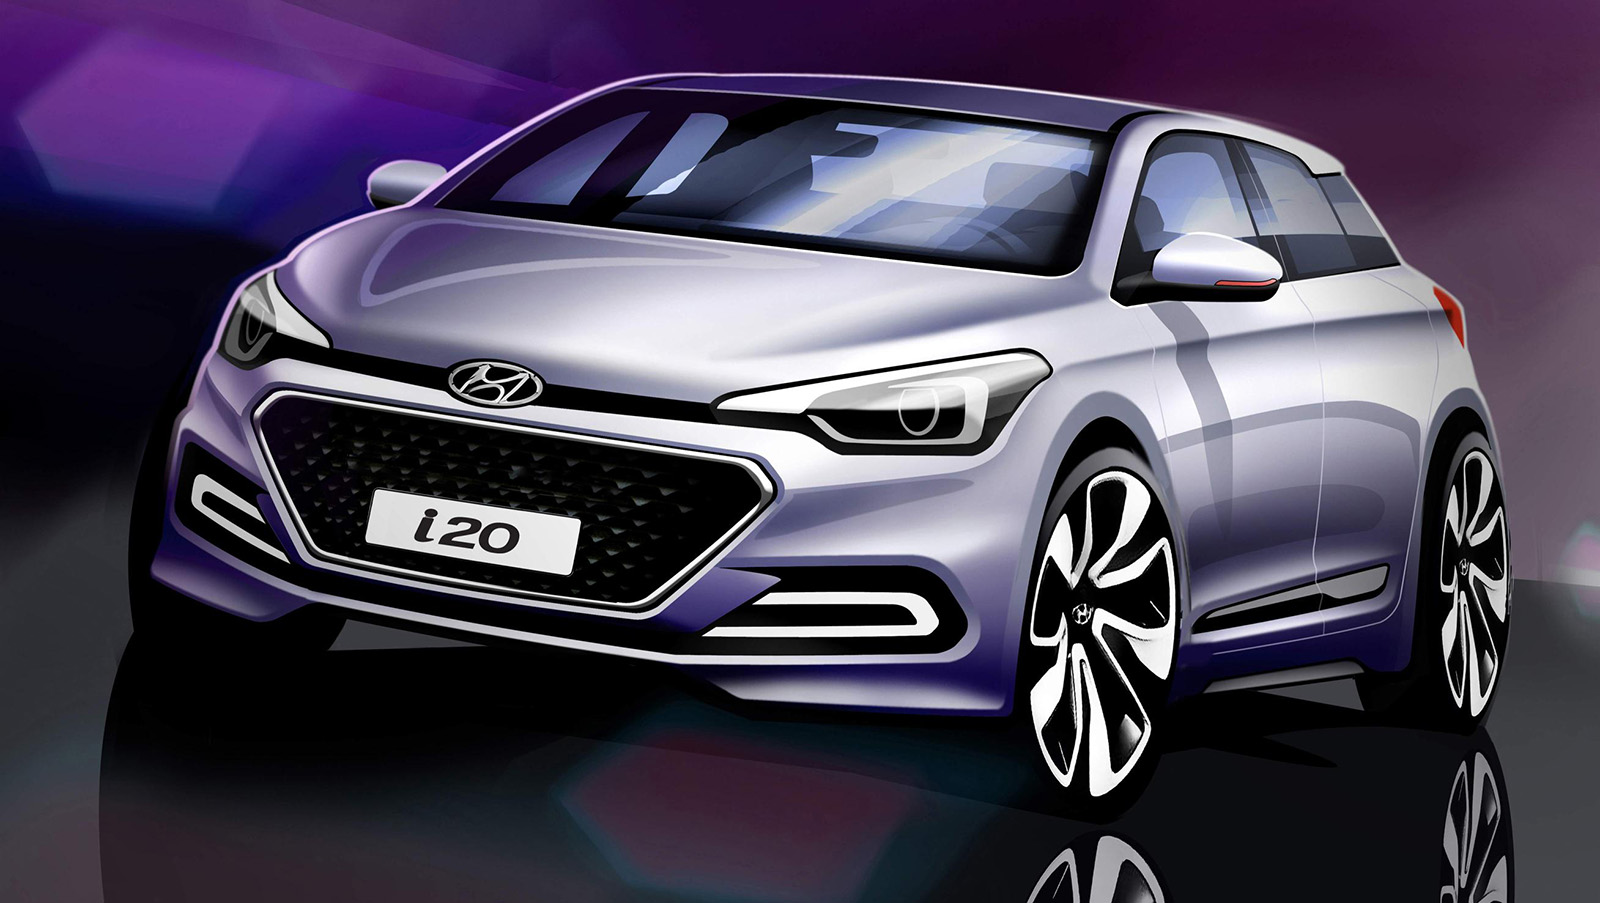 h New Generation i20 Rendering_Front